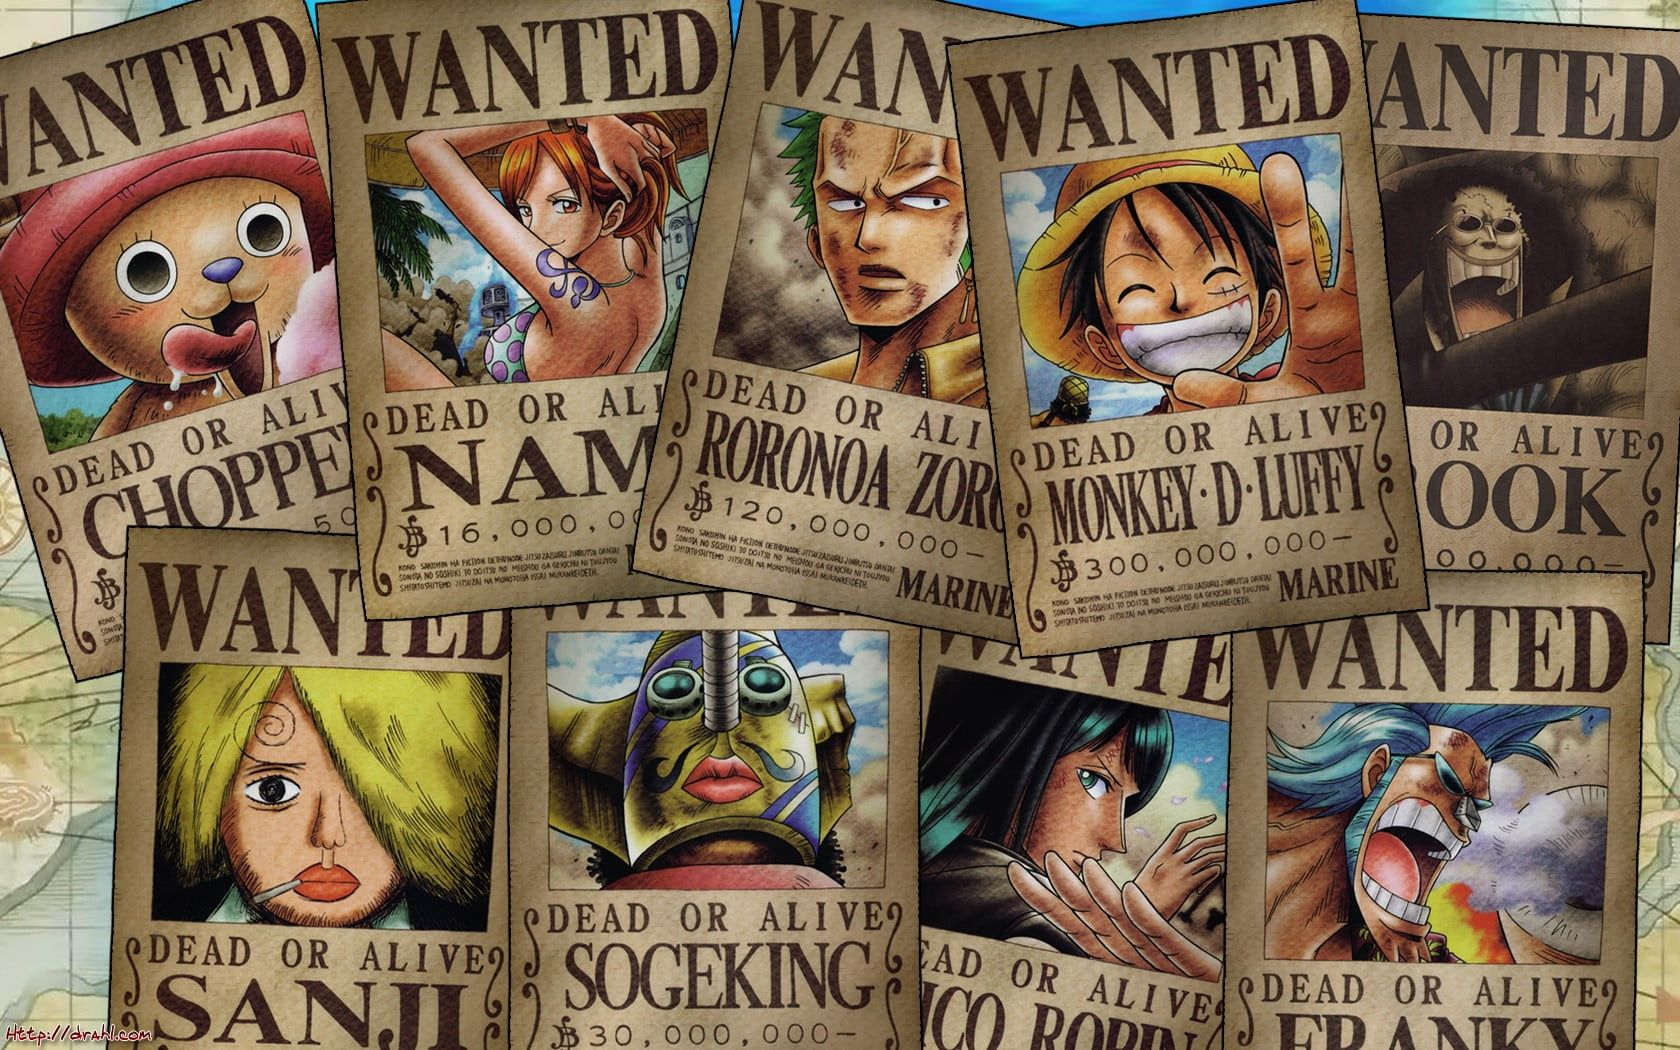 One Piece Wanted Posters One Piece Tony Tony Chopper Nami Roronoa Zoro Monkey D Luffy Brook Sanji Usopp N One Piece Theme Custom Canvas Art Monkey D Luffy